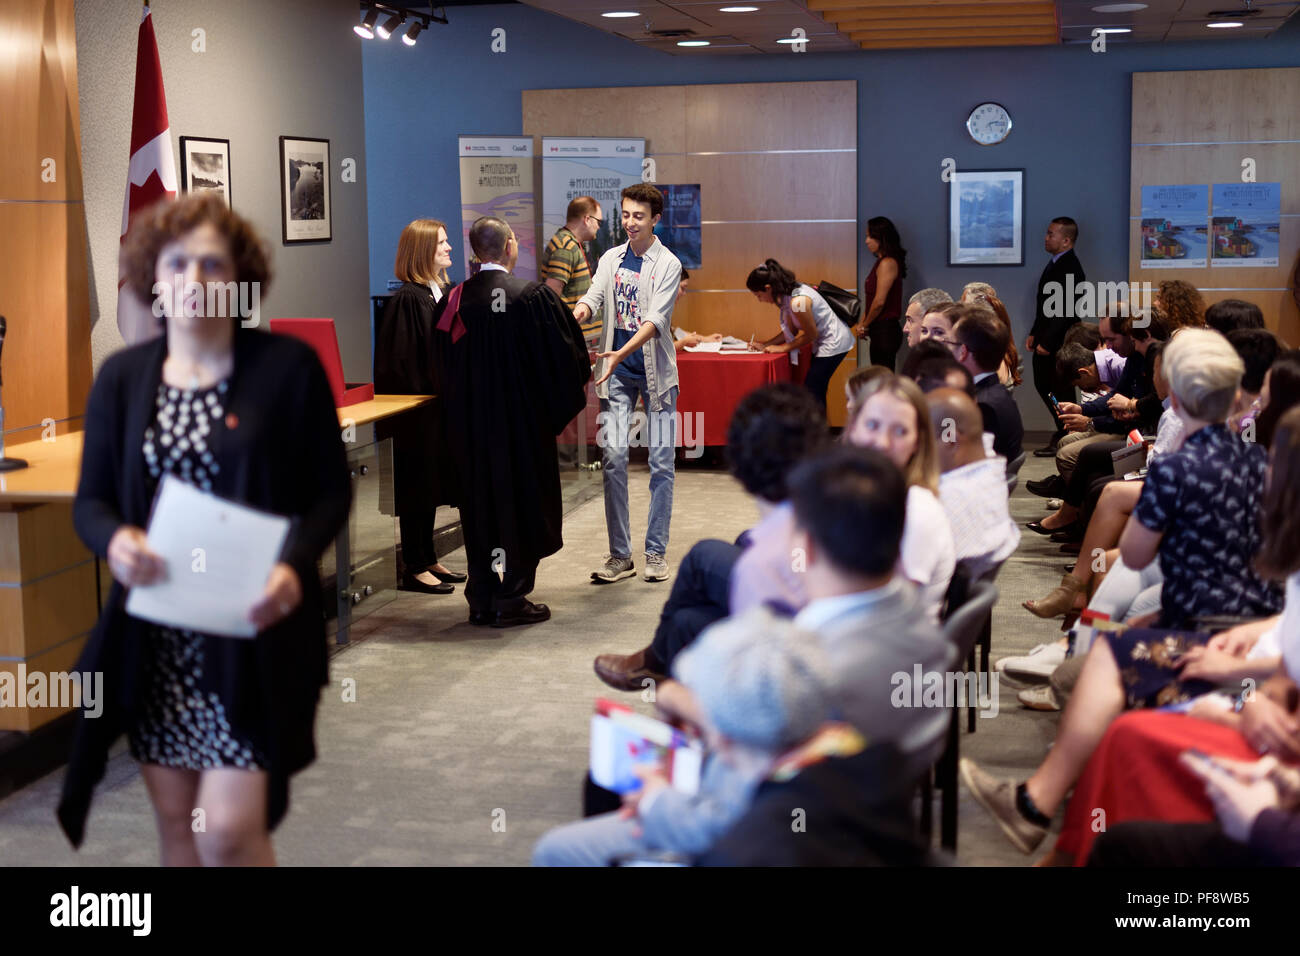 New Canadian citizens receiving their Citizenship certificates from the judge in a Citizenship ceremony venue in Vancouver, British Columbia, Canada 2 - Stock Image